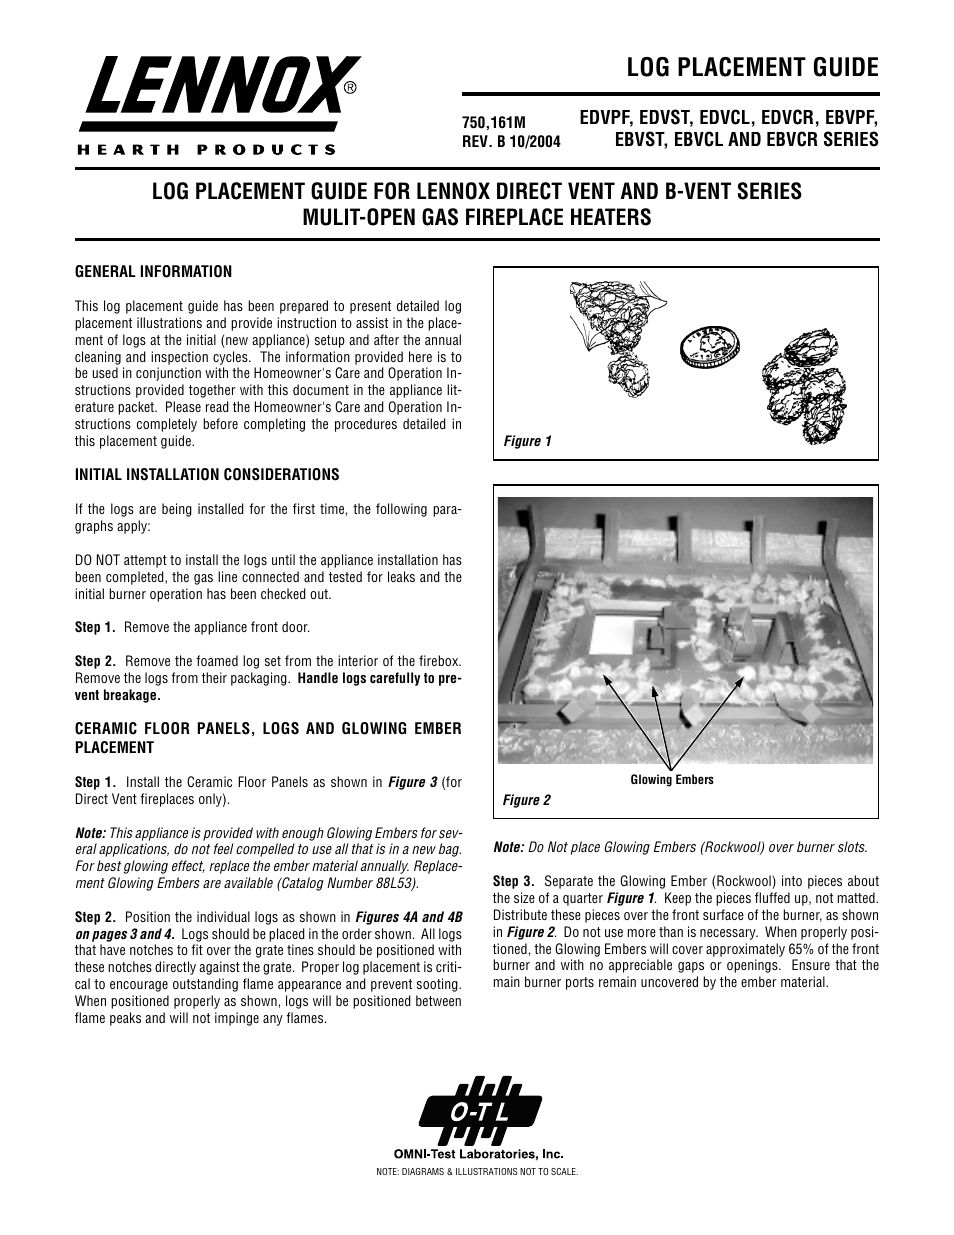 gas fireplace operating instructions junsaus lennox gas fireplace